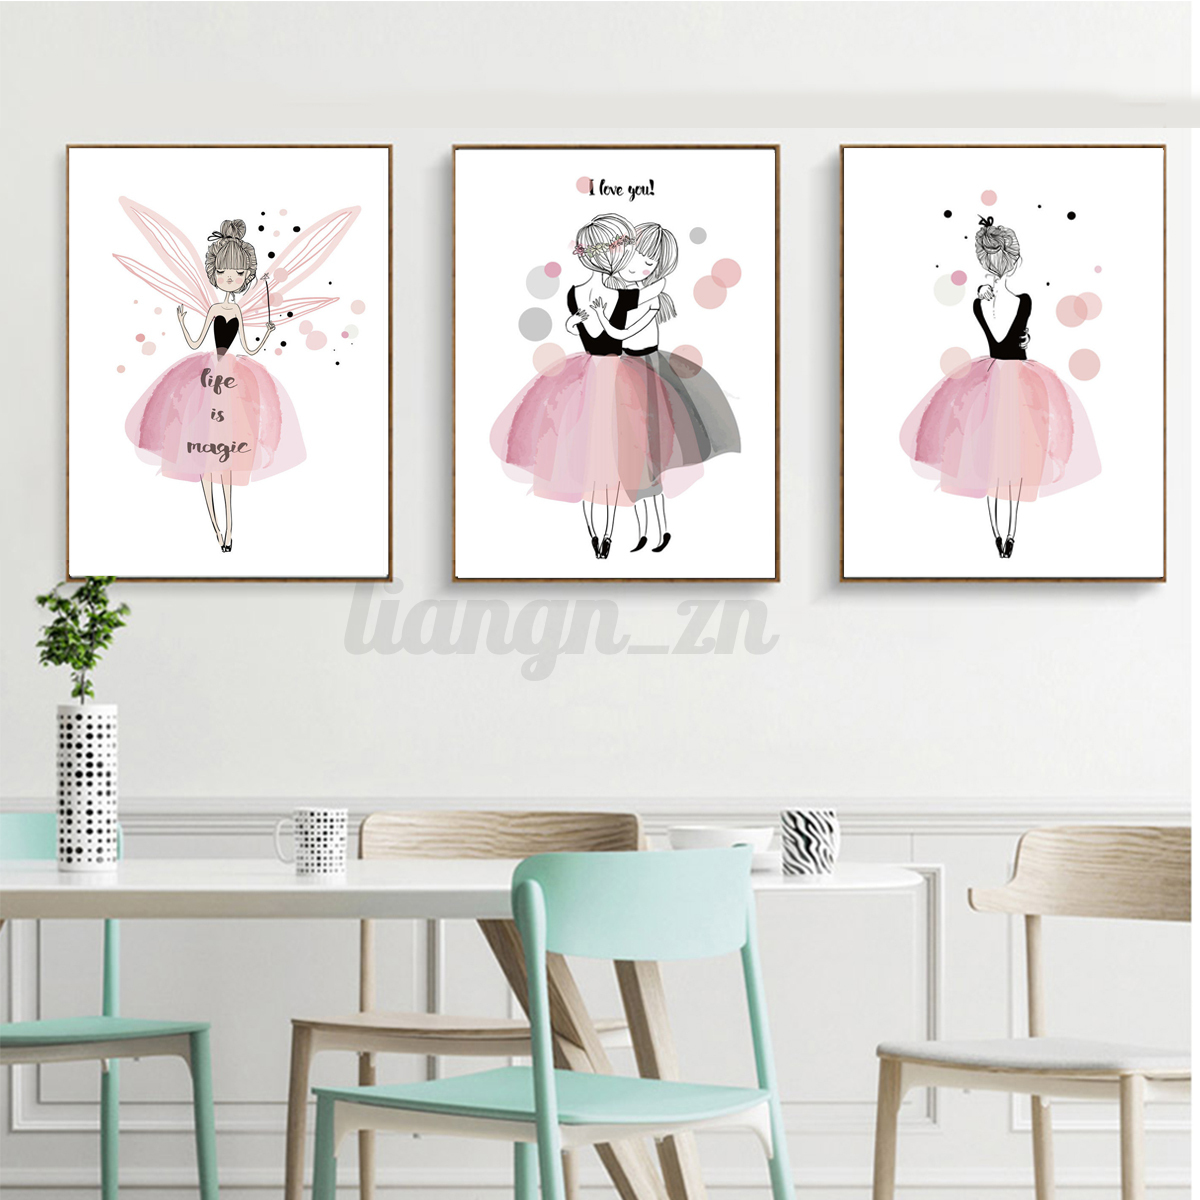 kawaii fille cute style peinture toile poster murale enfant chambre d cor dessin ebay. Black Bedroom Furniture Sets. Home Design Ideas